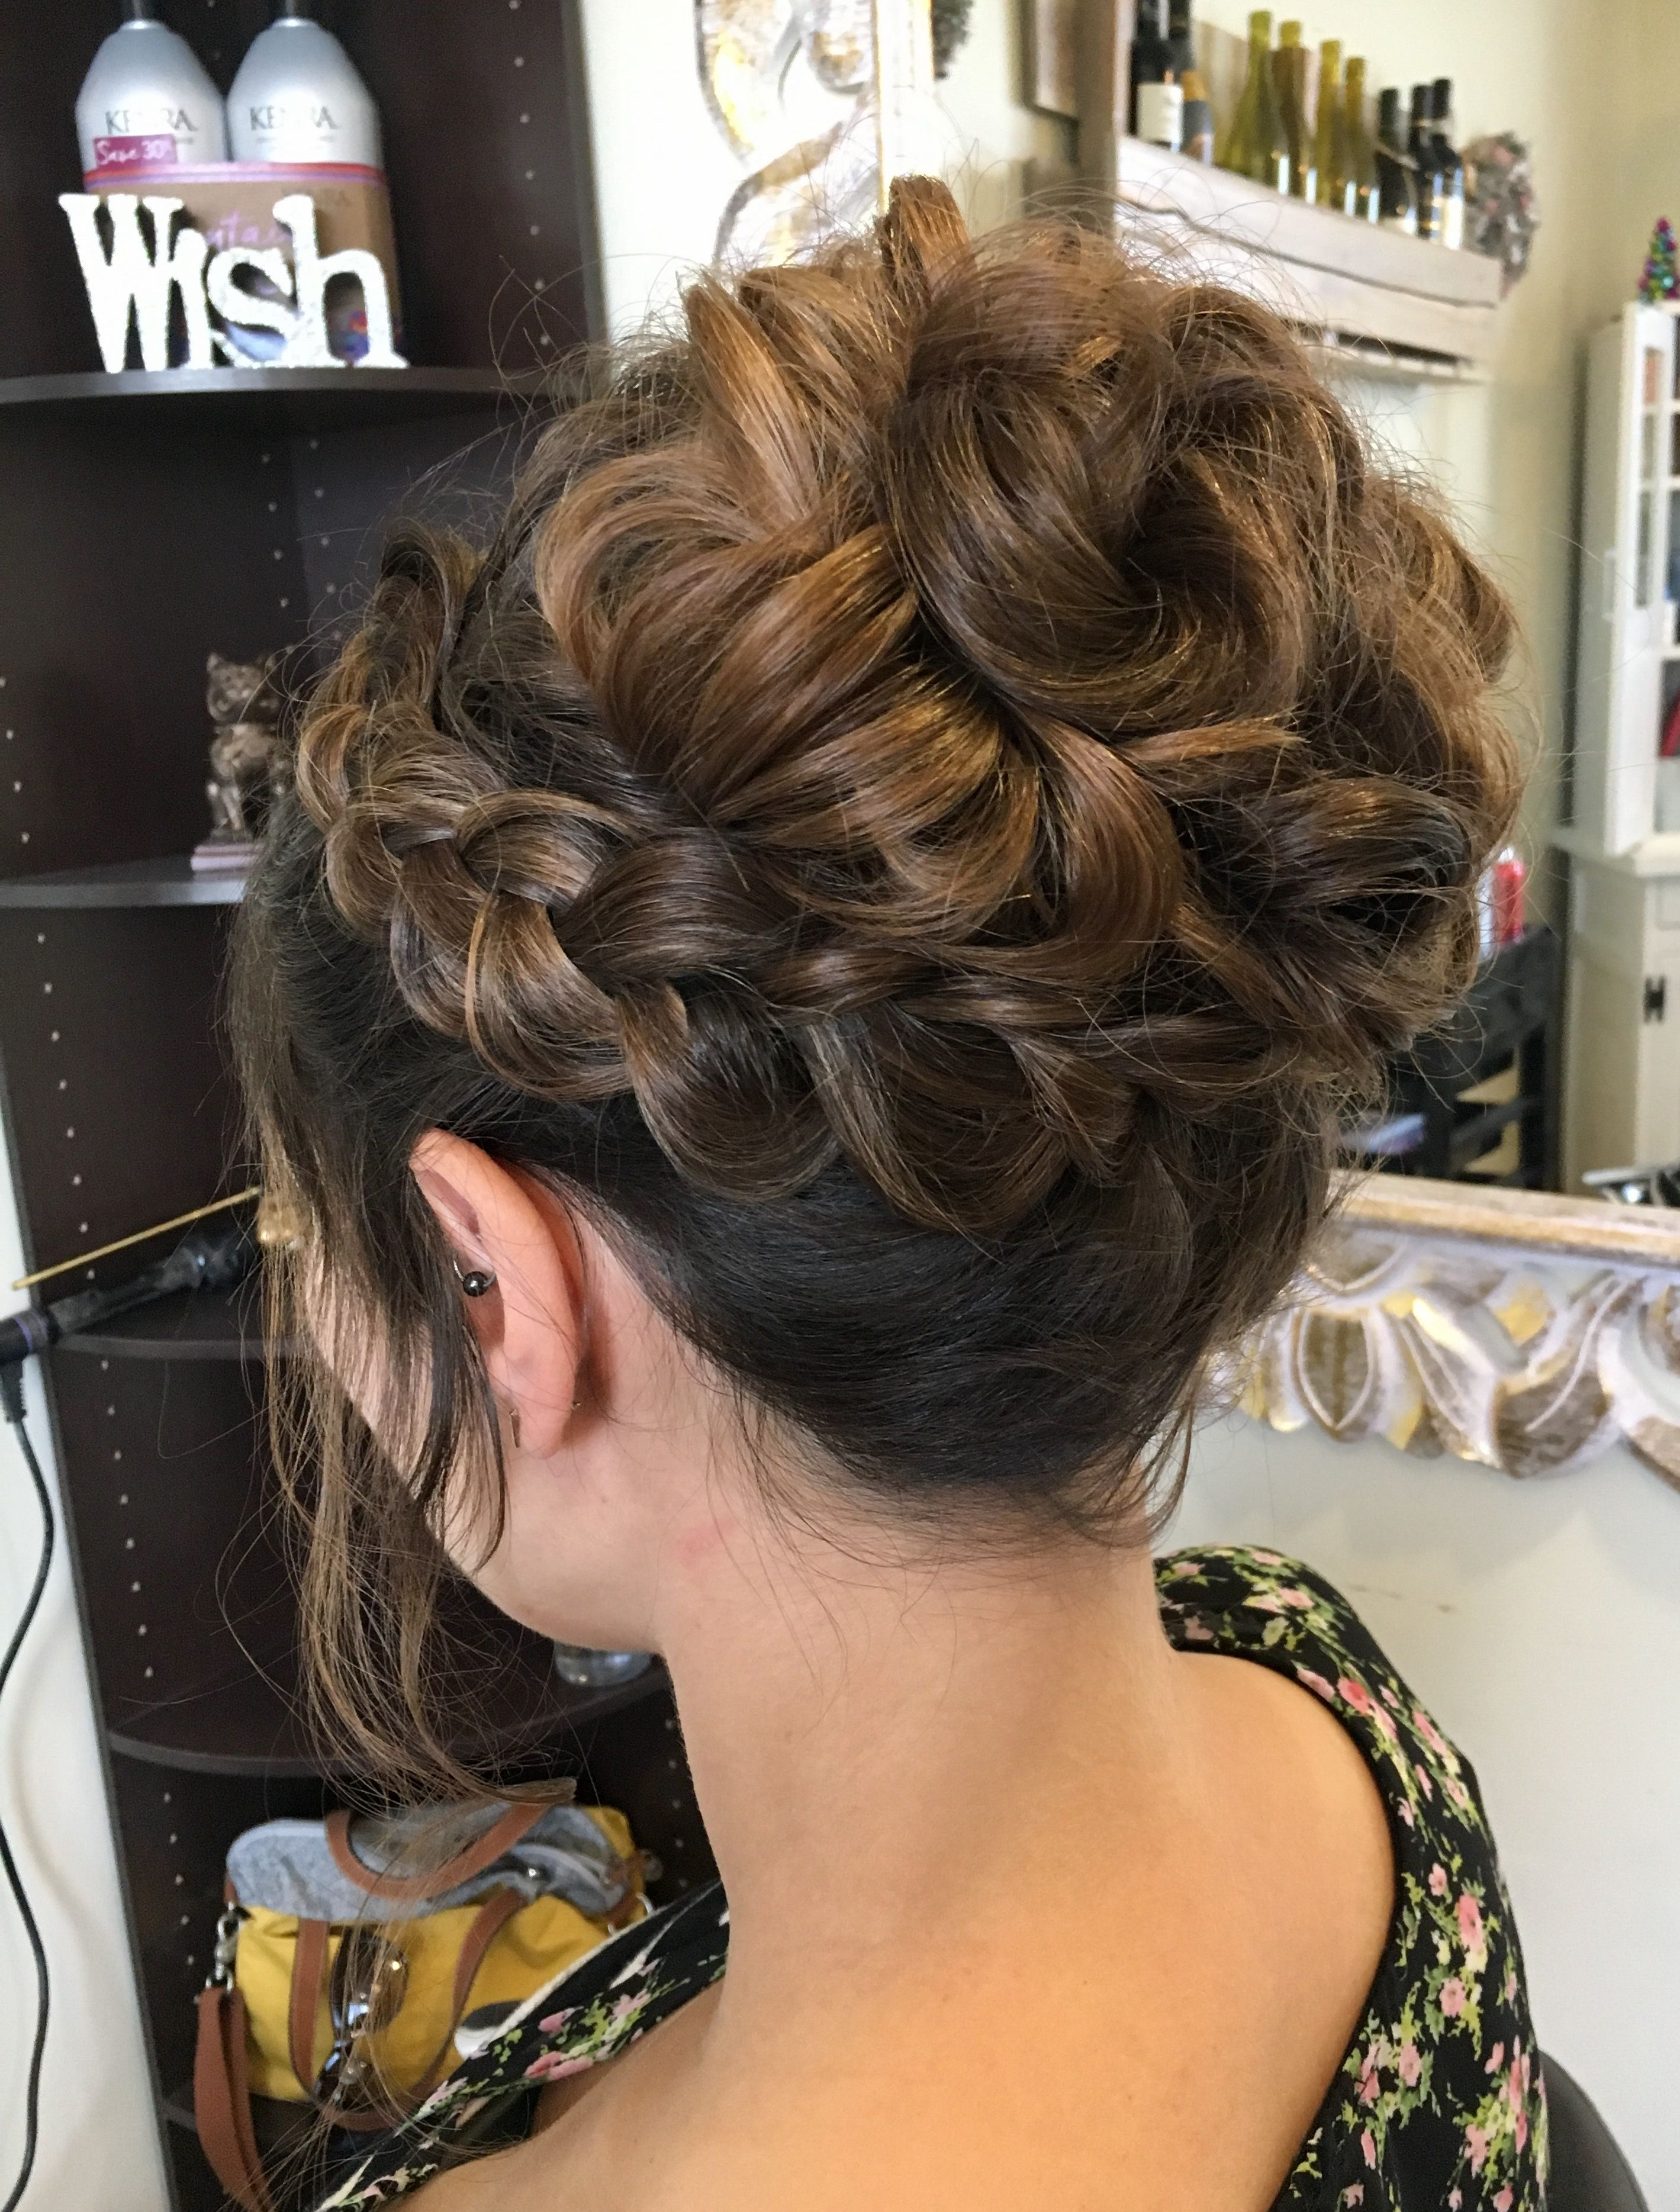 High Updo Hairstyles For Prom High Updo Hairstyles Bridal Hair Updo High Hair Styles High Updo